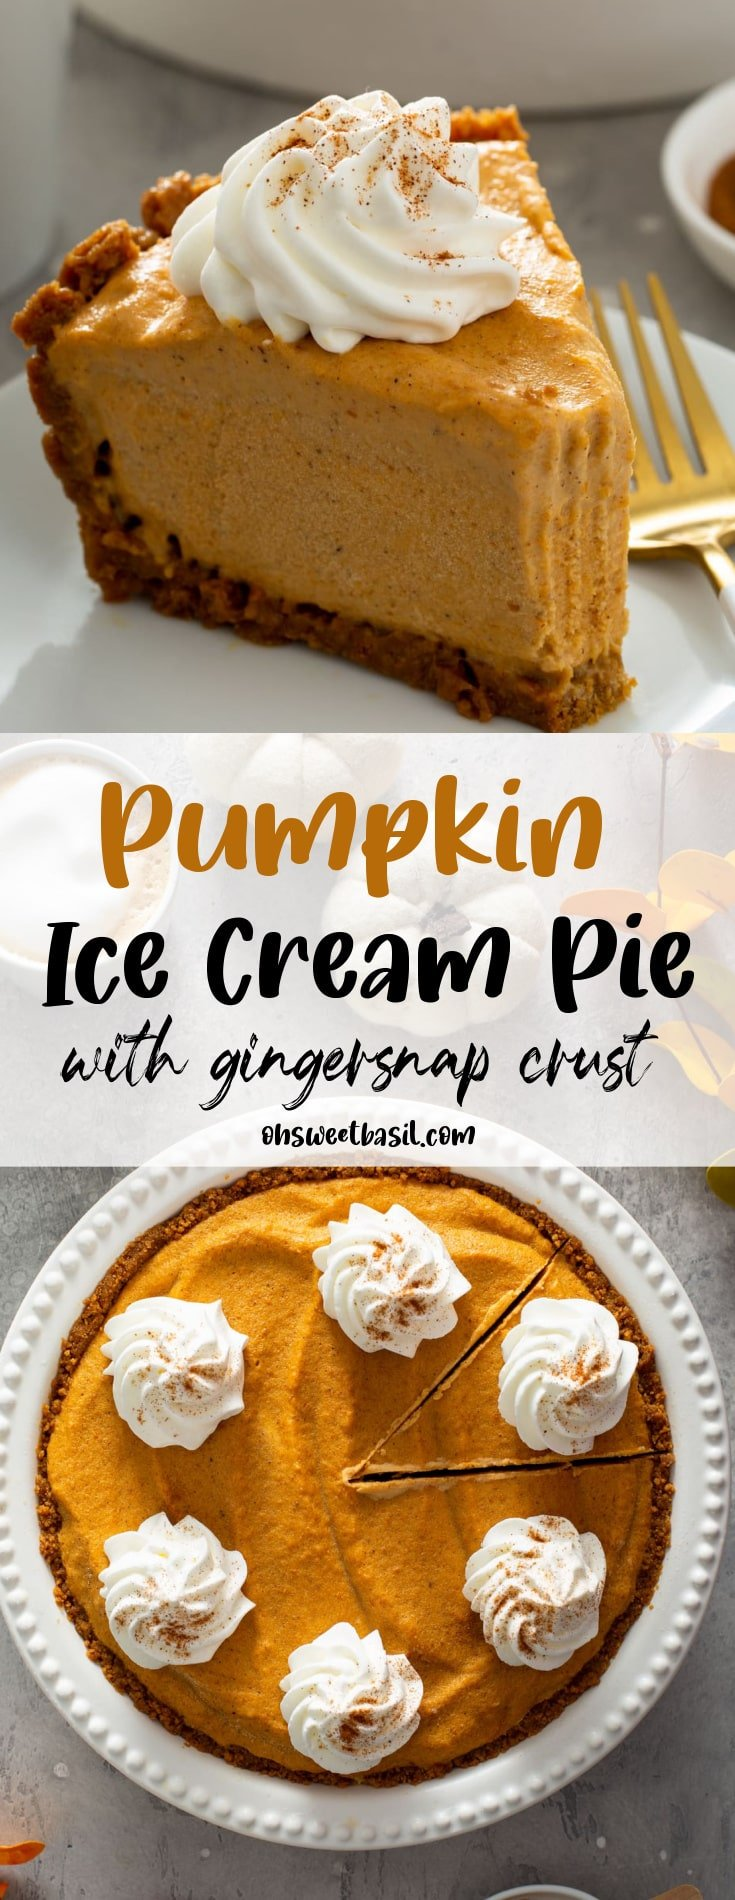 A slice of Pumpkin Ice cream Pie with a bite taked out of it on a white plate